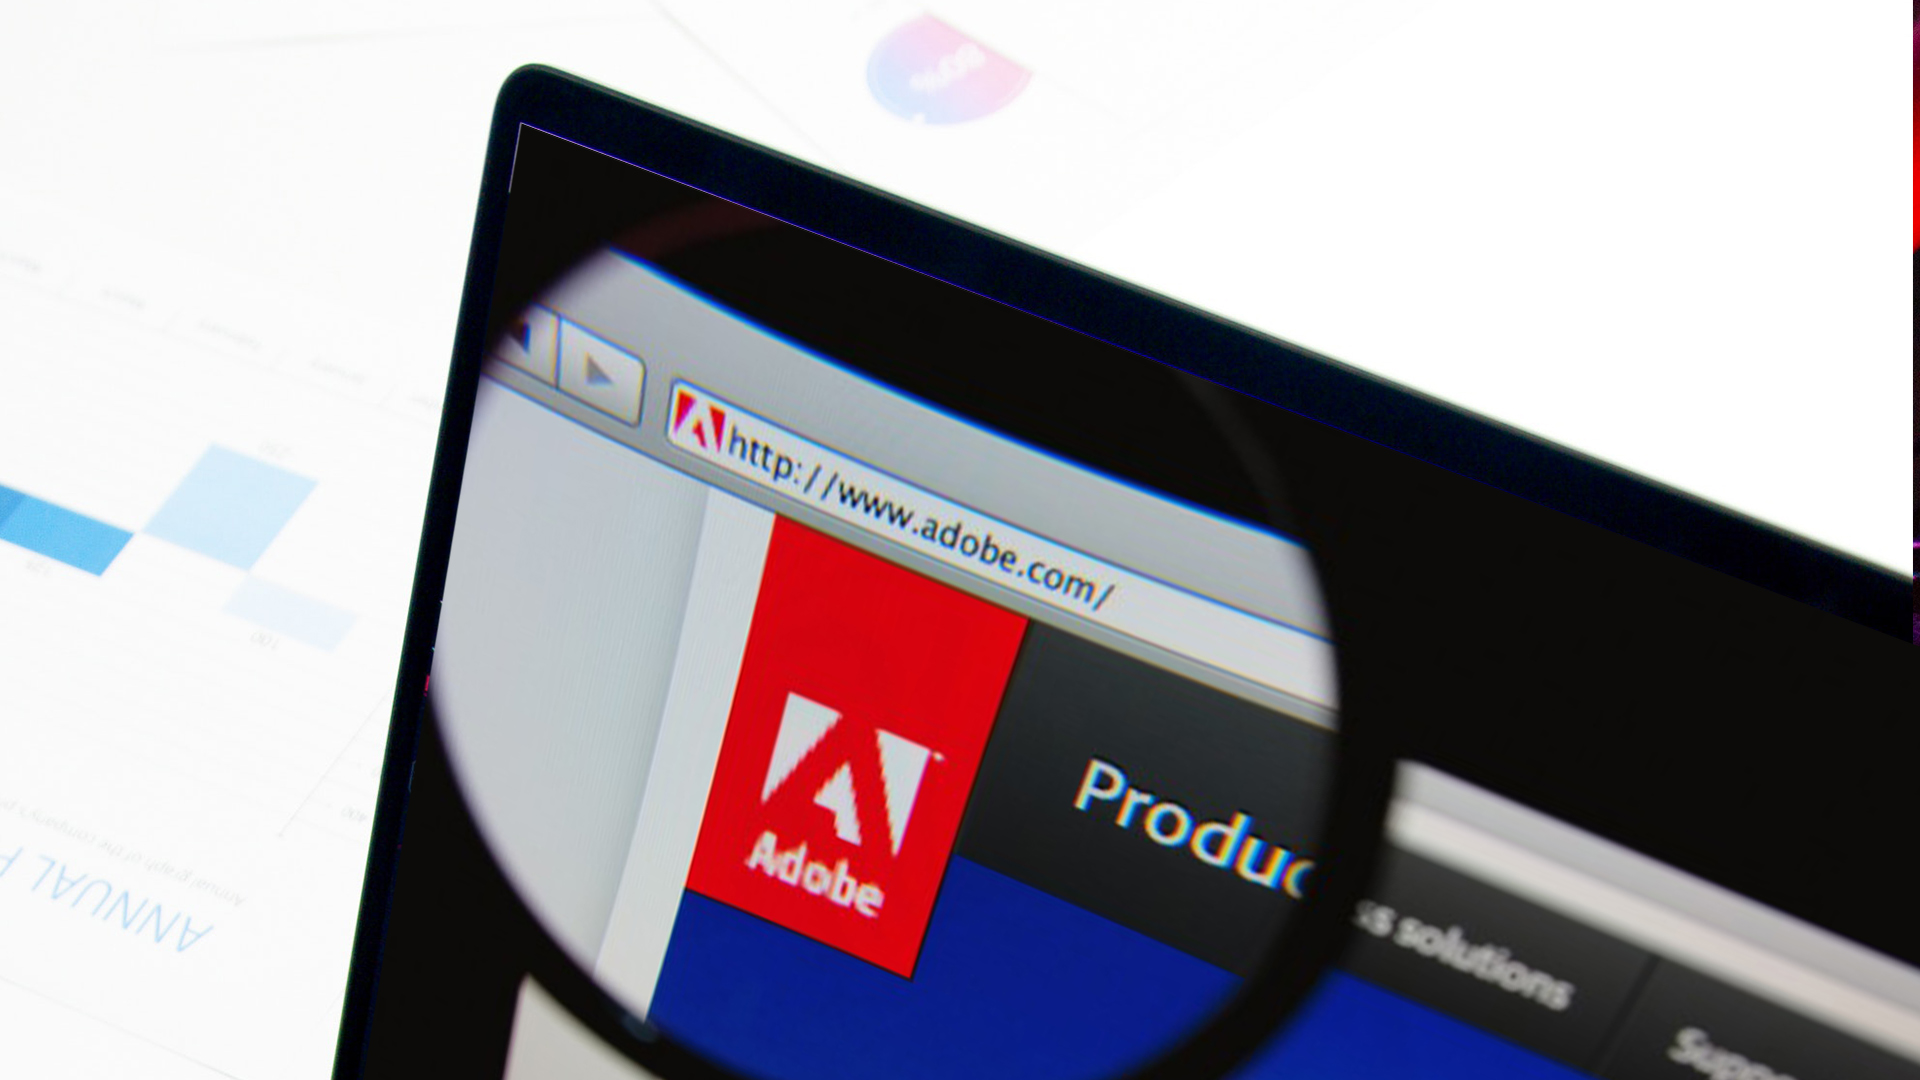 Adobe announces innovations in its Adobe Experience Cloud